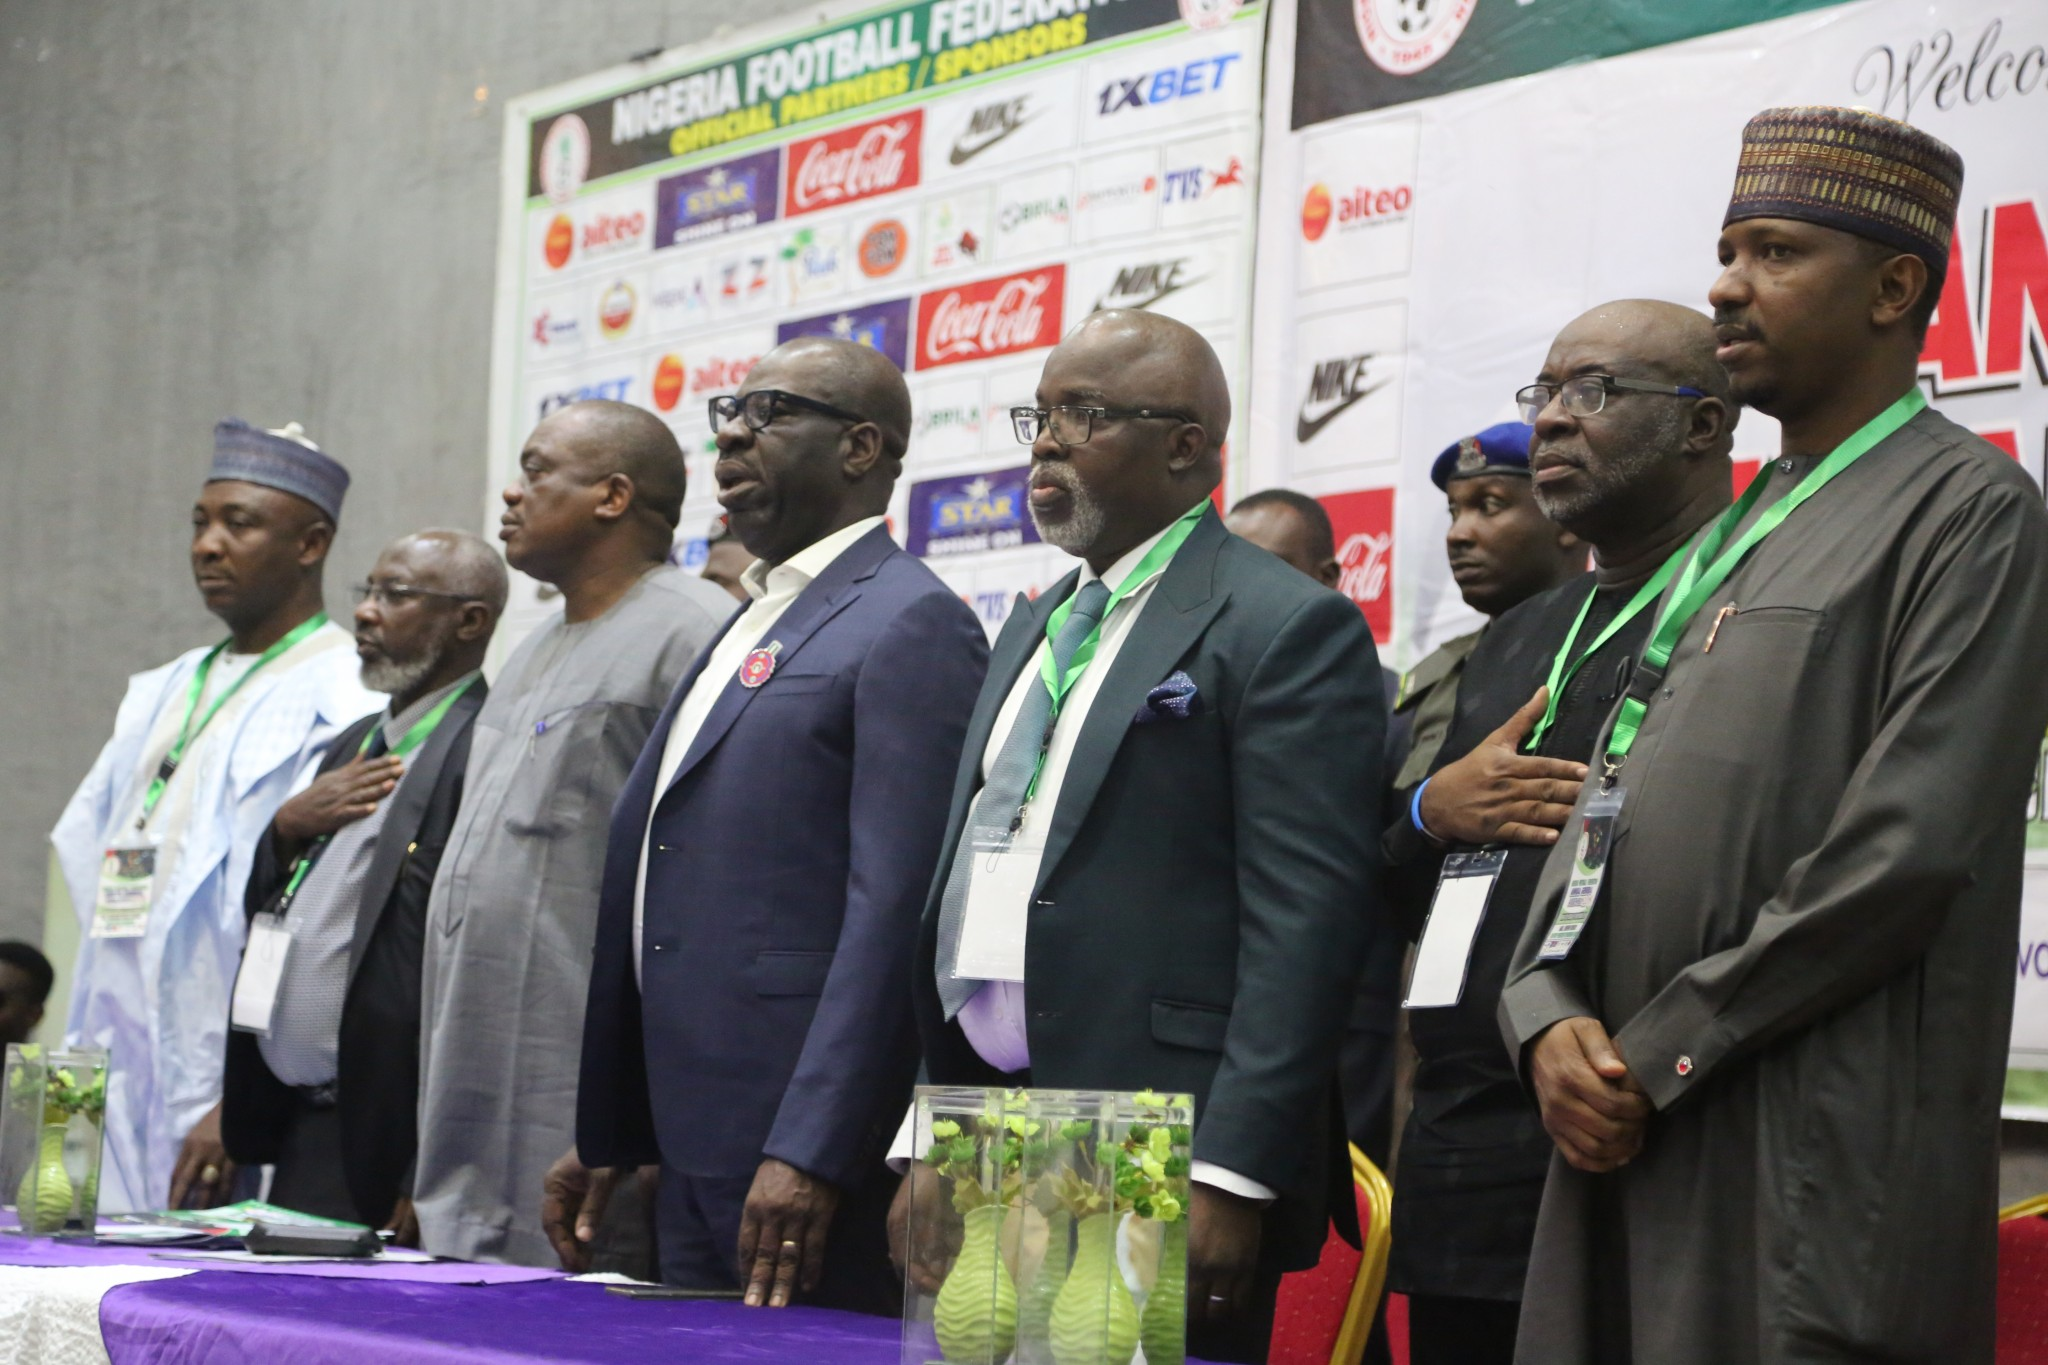 COMMUNIQUE OF THE 75TH ANNUAL GENERAL ASSEMBLY OF THE NIGERIA FOOTBALL FEDERATION HELD AT THE EDO HERITAGE HOTEL & SUITES, BENIN CITY ON TUESDAY, 17TH DECEMBER, 2019